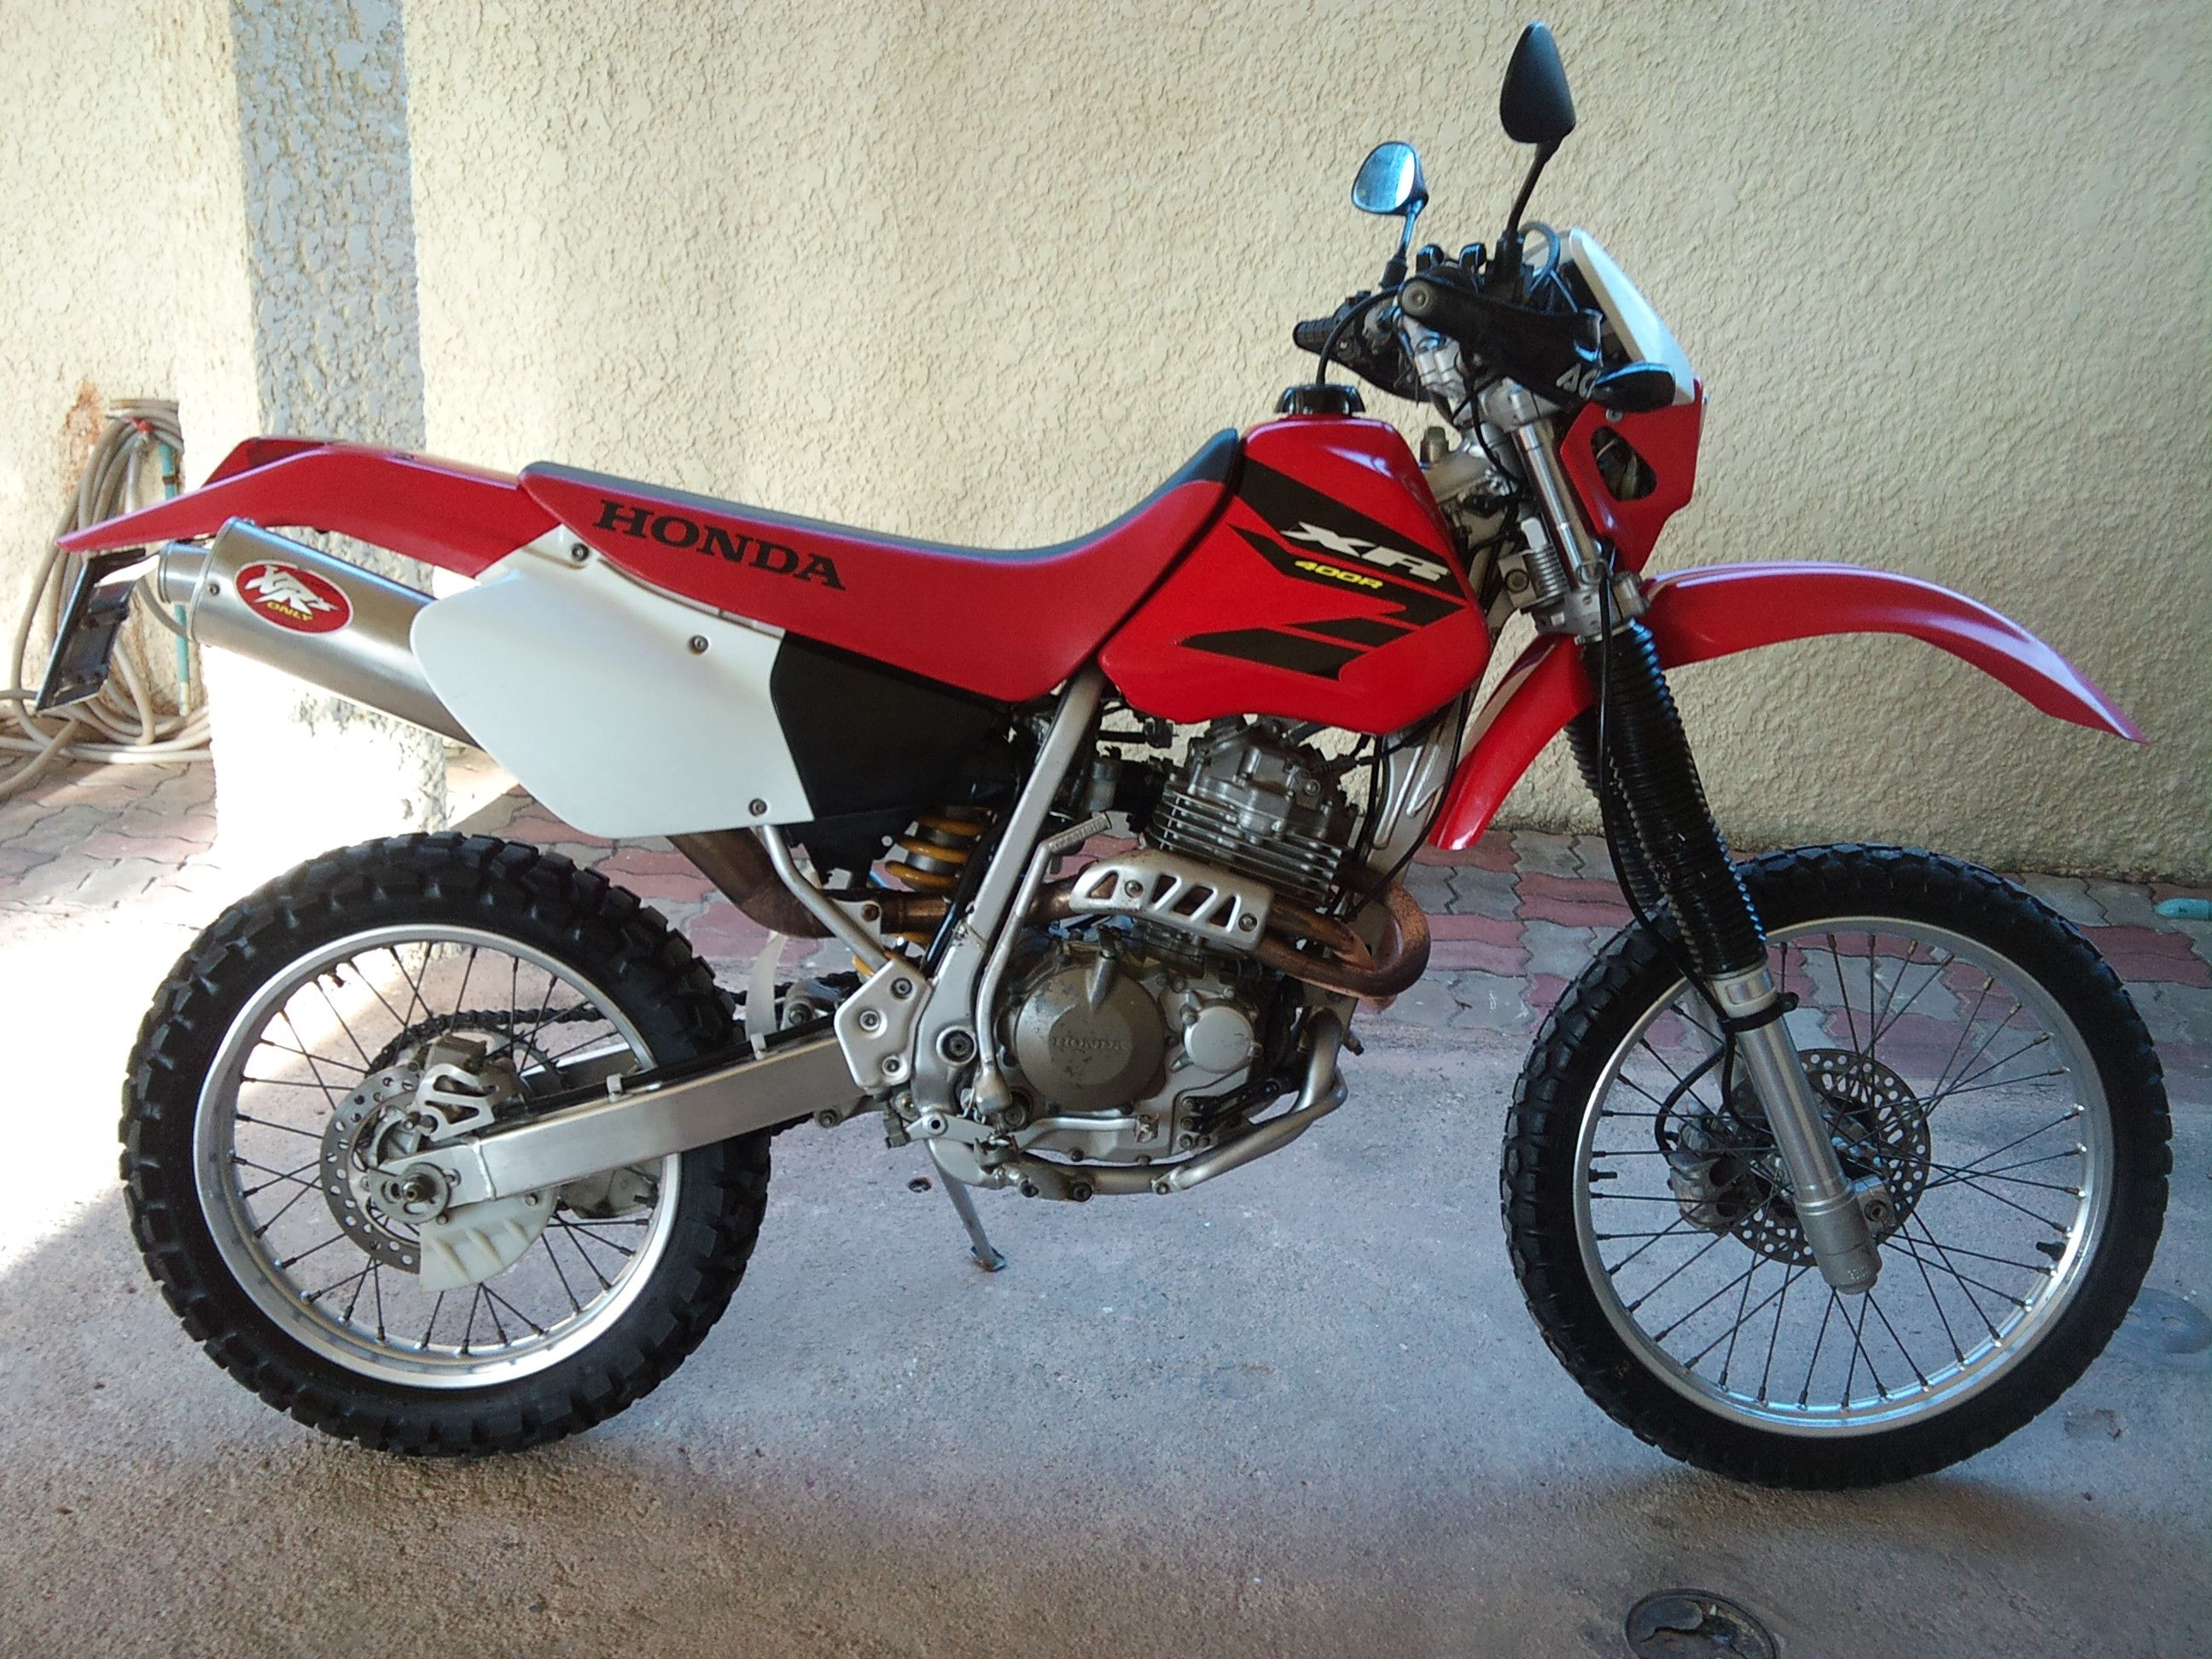 honda xr 400 r fotos de motos honda honda xr400 motorcycle. Black Bedroom Furniture Sets. Home Design Ideas